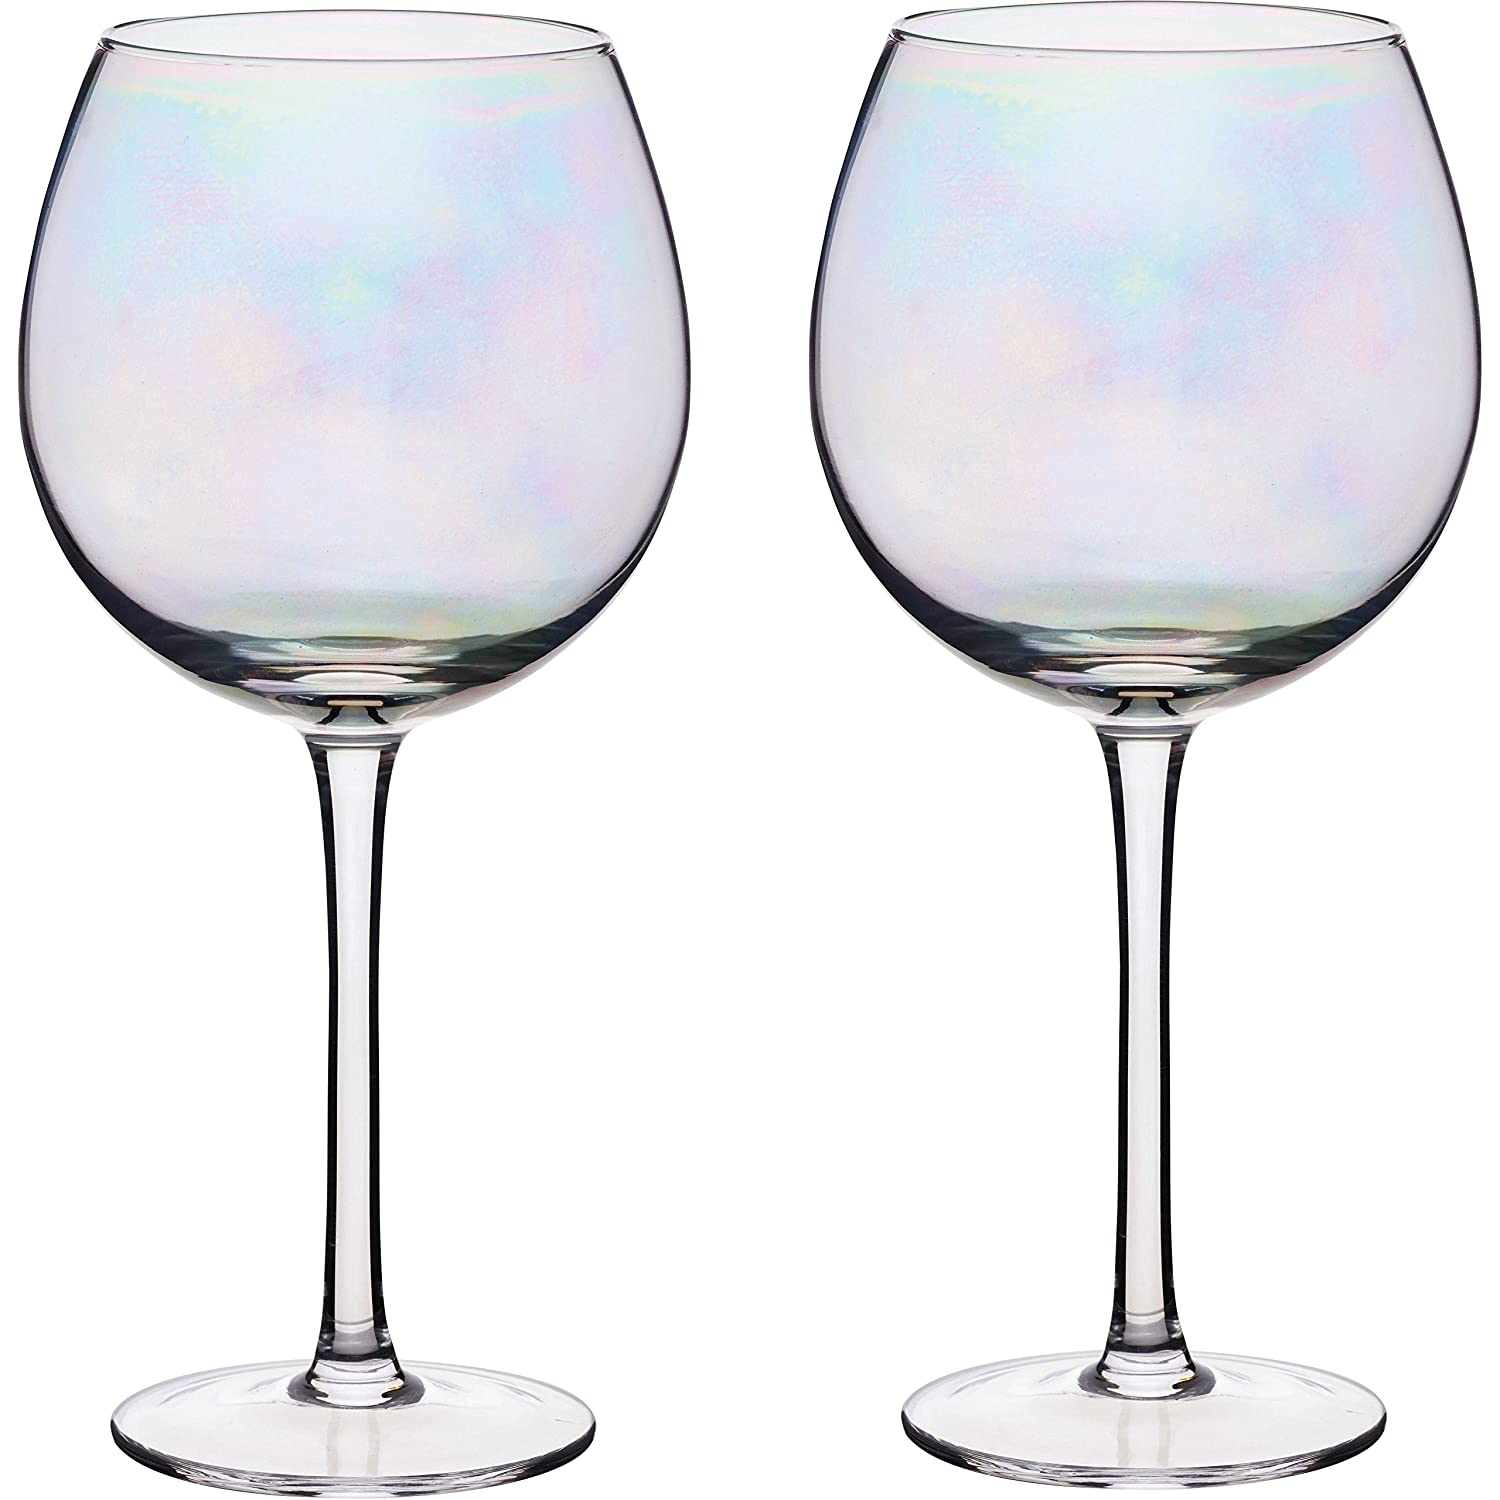 KitchenCraft BarCraft Balloon Gin Glasses, Rainbow-Pearl Iridescent, 500 ml, Set of 2